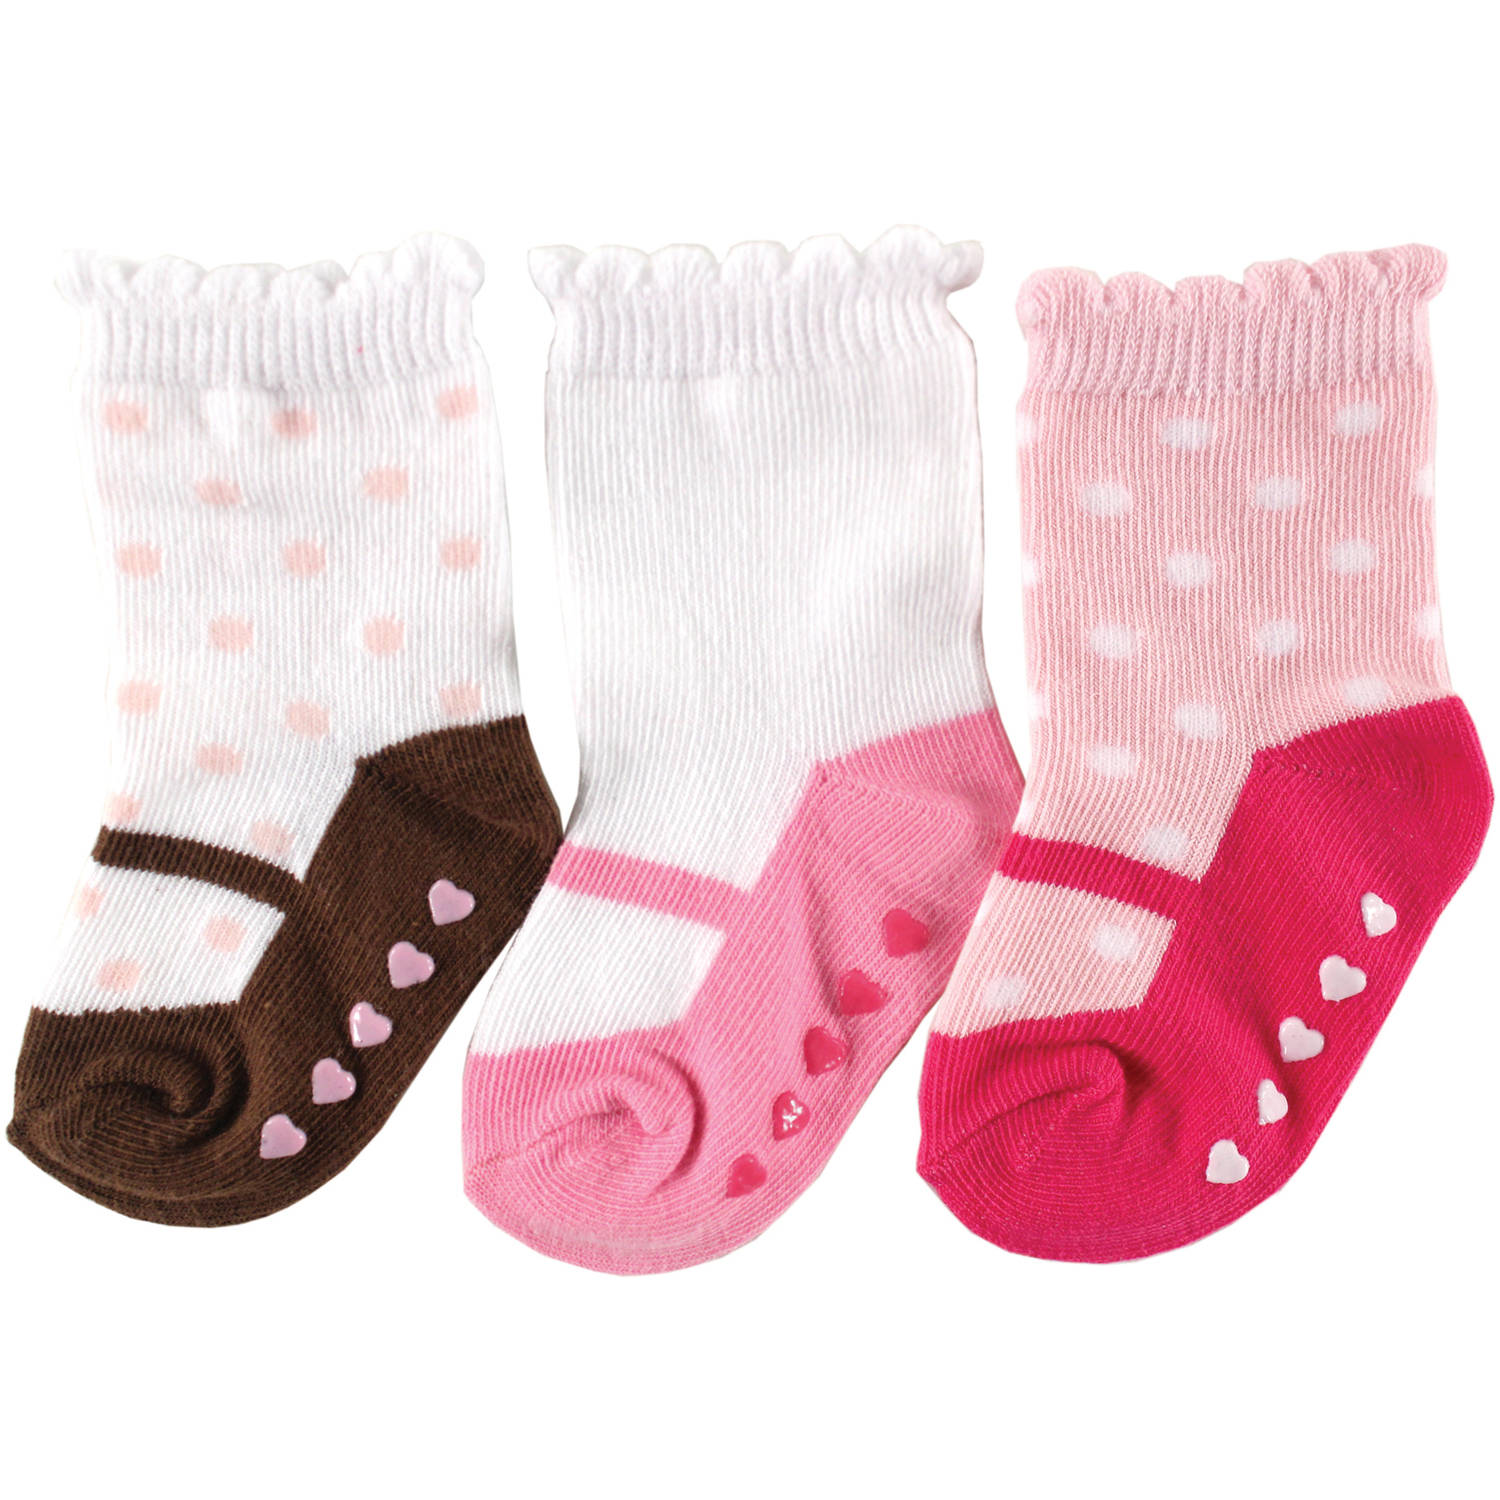 Luvable Friends Newborn Baby Girls Non-Skid Shoes Socks 3-Pack